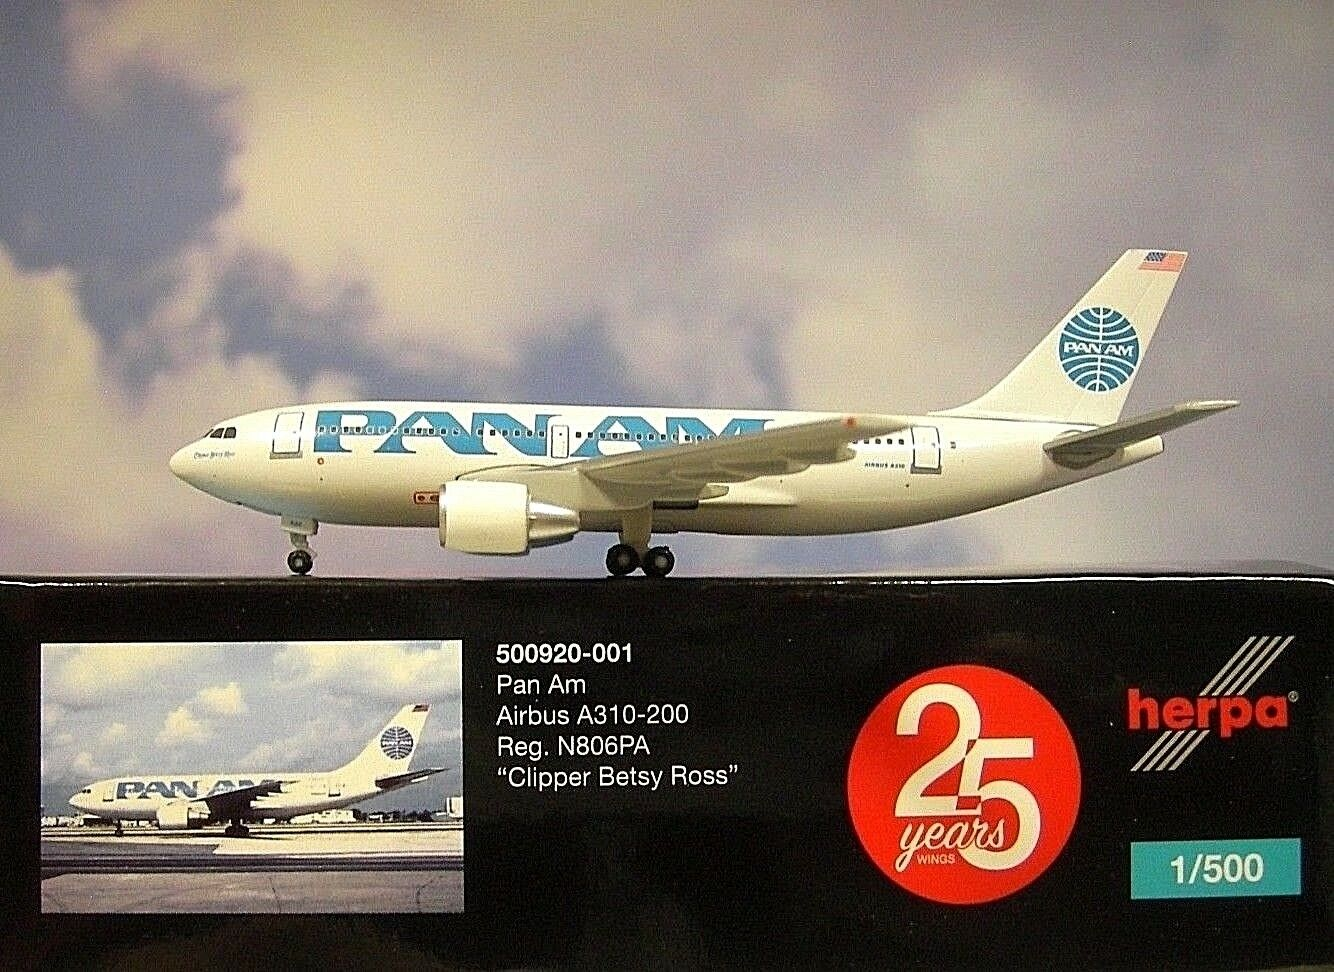 Herpa Wings 1 500 airbus airbus airbus a310-200 pan am n806pa 500920-001 modellairport 500 ca32db